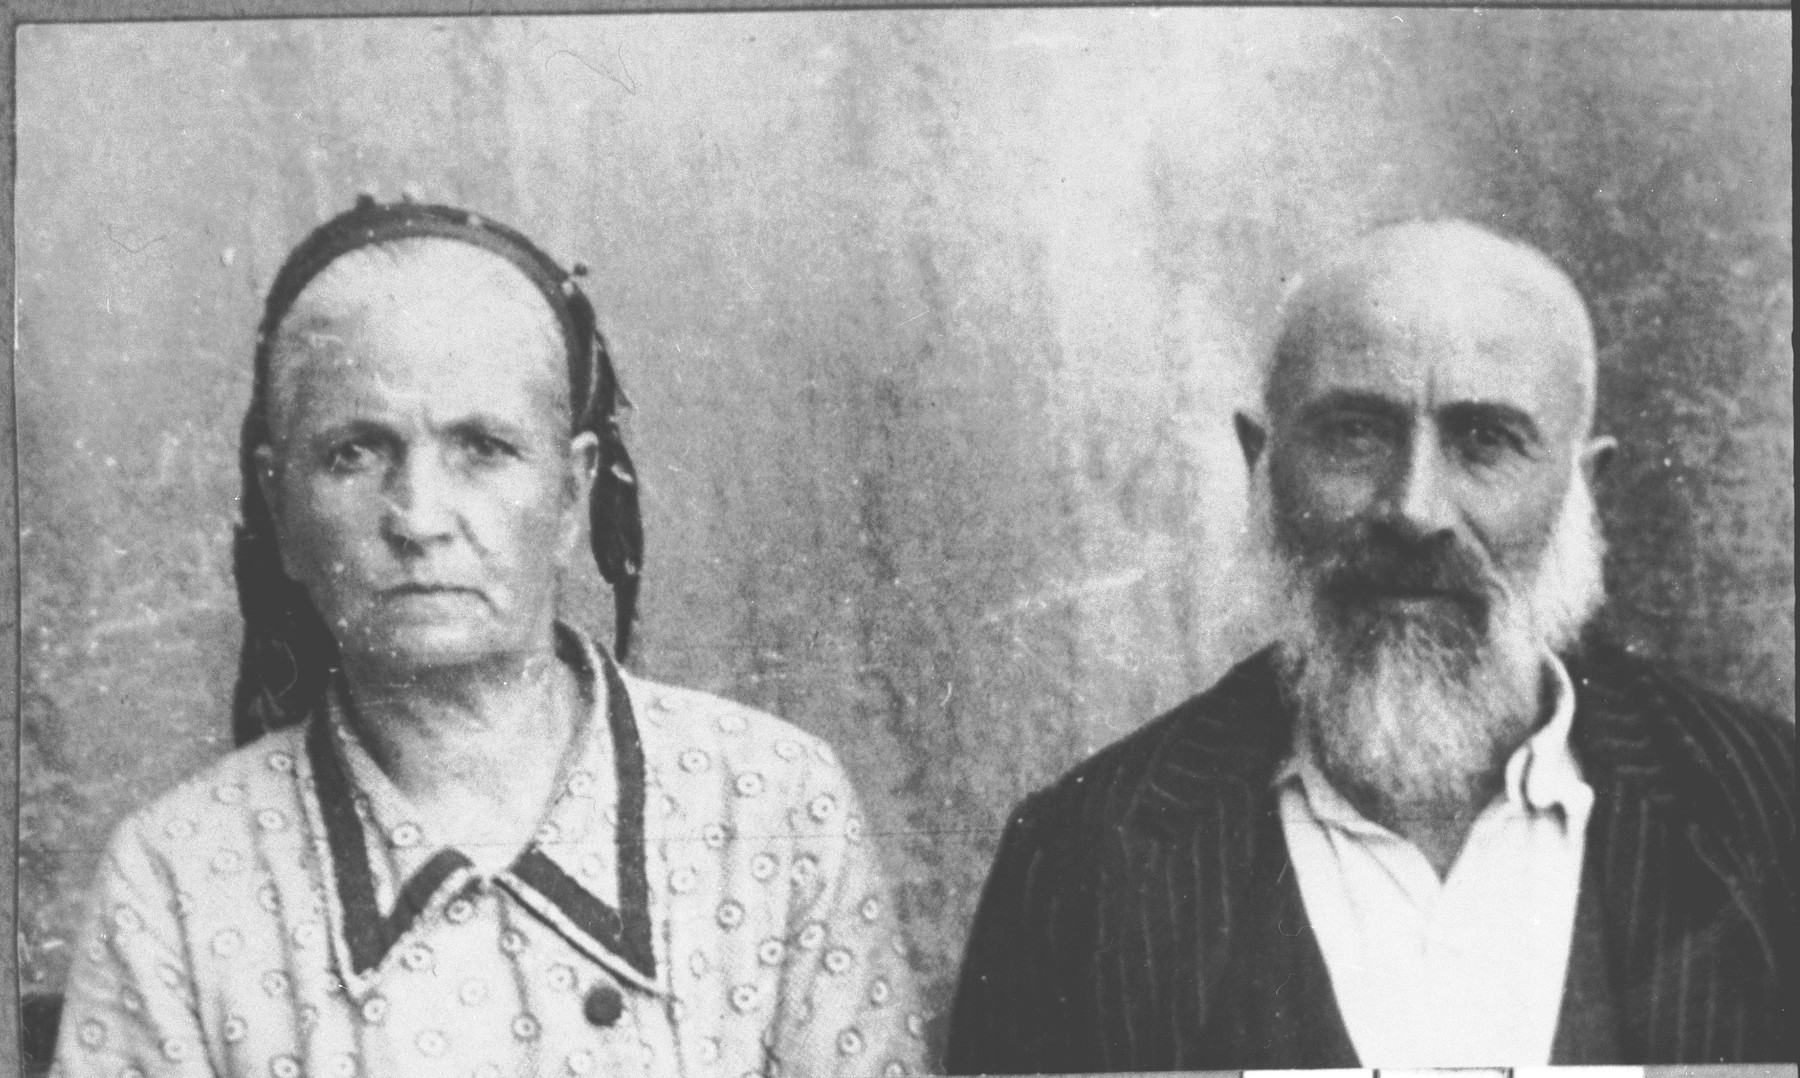 Portrait of Isak Kamchi, son of Yakov Kamchi, and Isak's wife, Sol.  Isak was a grocer.  They lived at Drinska 79 in Bitola.